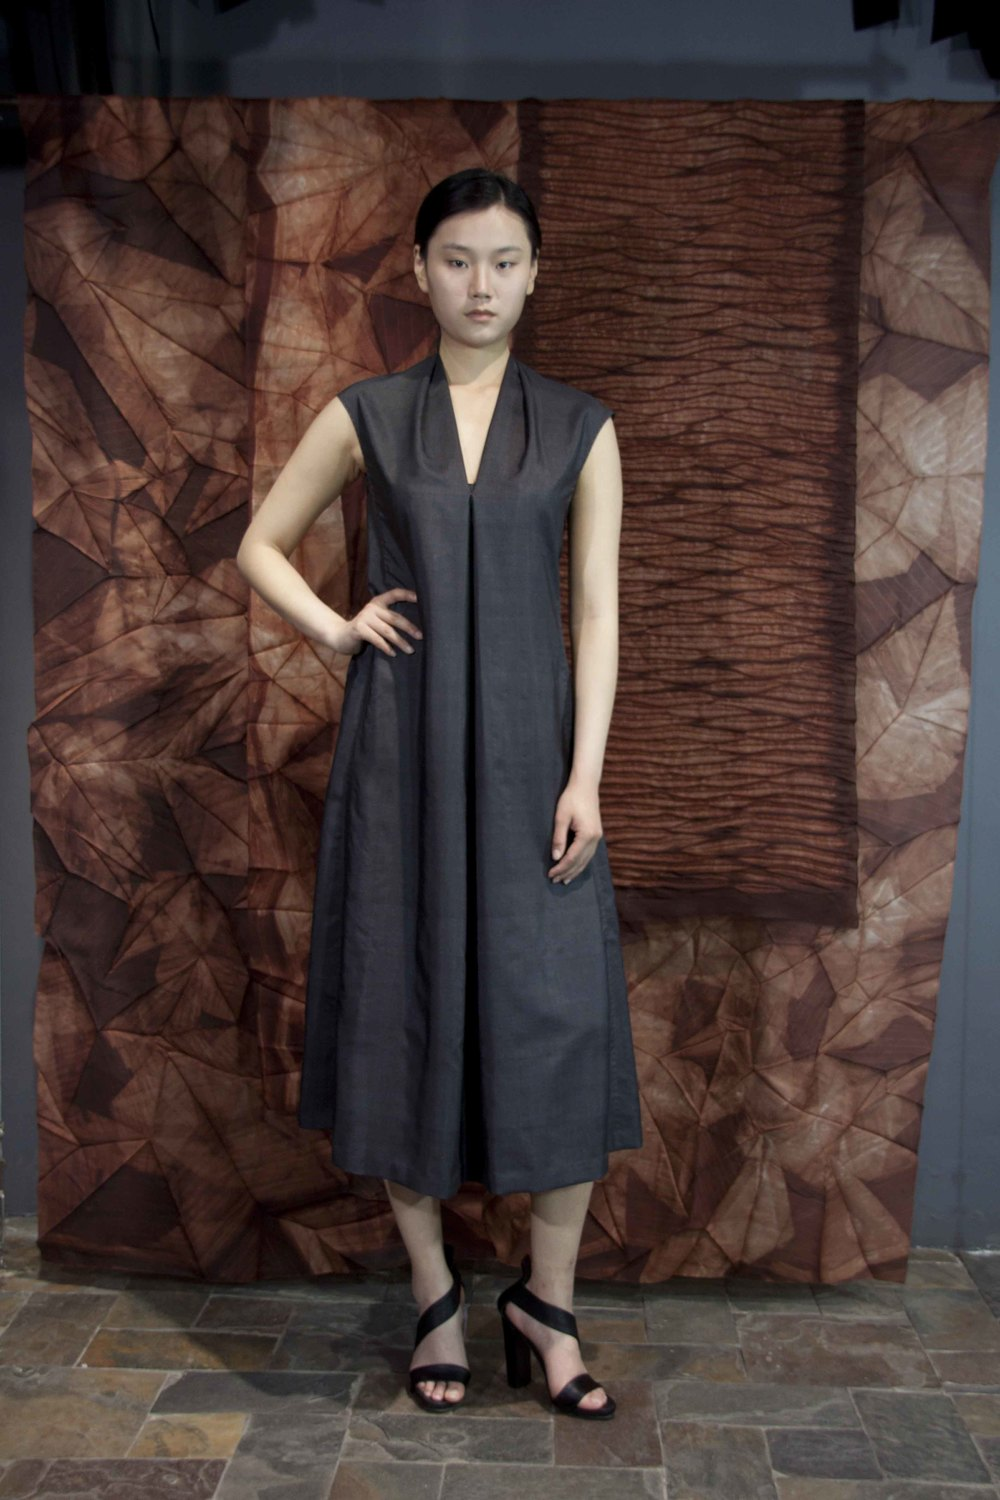 "28-27 Asphalt Honan-silk dress  /   沥青色南韩丝领口压褶连衣裙                                                                                                                                                                                                                                                                                                   /* Style Definitions */  table.MsoNormalTable 	{mso-style-name:""Table Normal""; 	mso-tstyle-rowband-size:0; 	mso-tstyle-colband-size:0; 	mso-style-noshow:yes; 	mso-style-priority:99; 	mso-style-qformat:yes; 	mso-style-parent:""""; 	mso-padding-alt:0in 5.4pt 0in 5.4pt; 	mso-para-margin-top:0in; 	mso-para-margin-right:0in; 	mso-para-margin-bottom:10.0pt; 	mso-para-margin-left:0in; 	line-height:115%; 	mso-pagination:widow-orphan; 	font-size:11.0pt; 	font-family:""Calibri"",""sans-serif""; 	mso-ascii-font-family:Calibri; 	mso-ascii-theme-font:minor-latin; 	mso-hansi-font-family:Calibri; 	mso-hansi-theme-font:minor-latin; 	mso-bidi-font-family:""Times New Roman""; 	mso-bidi-theme-font:minor-bidi;}"